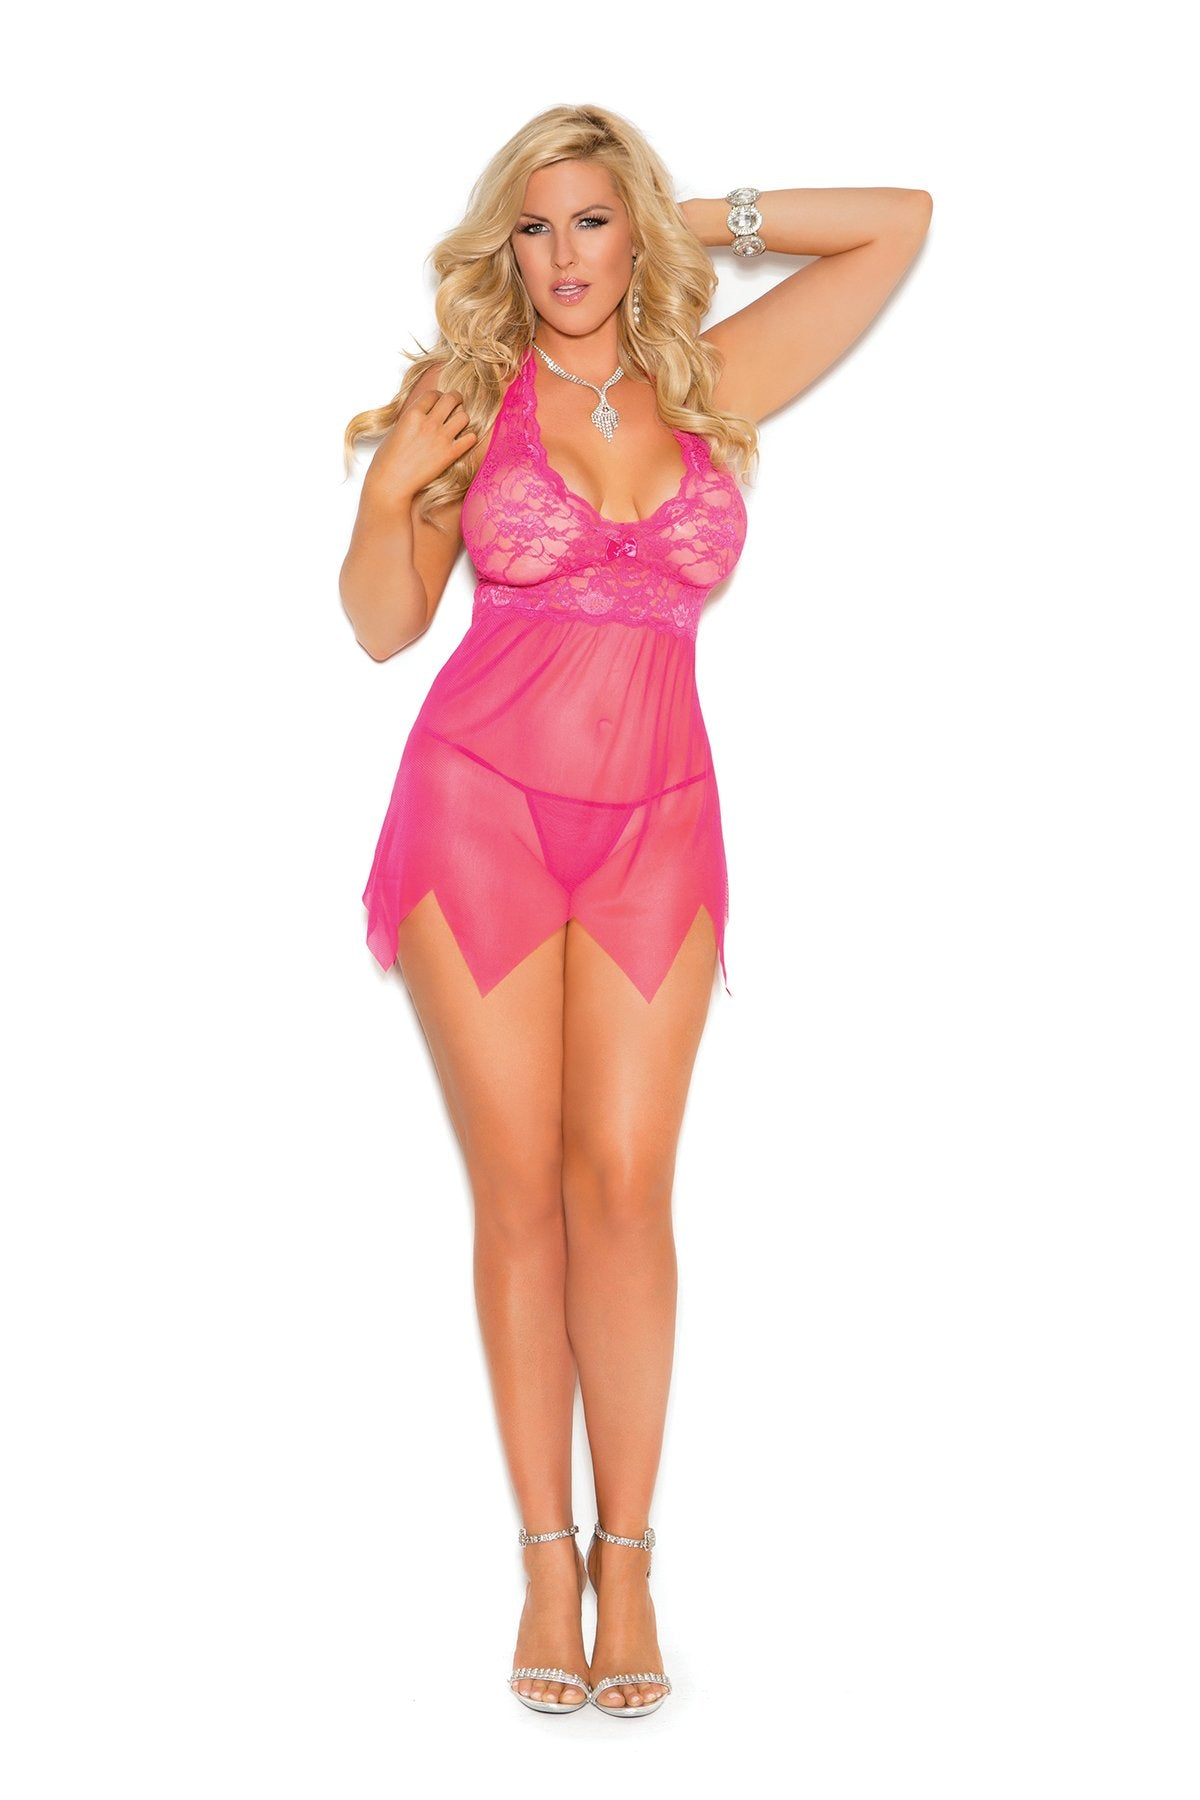 Lace and Mesh Halter Babydoll-lingerie-Elegant Moments-1x-pink-Nakees